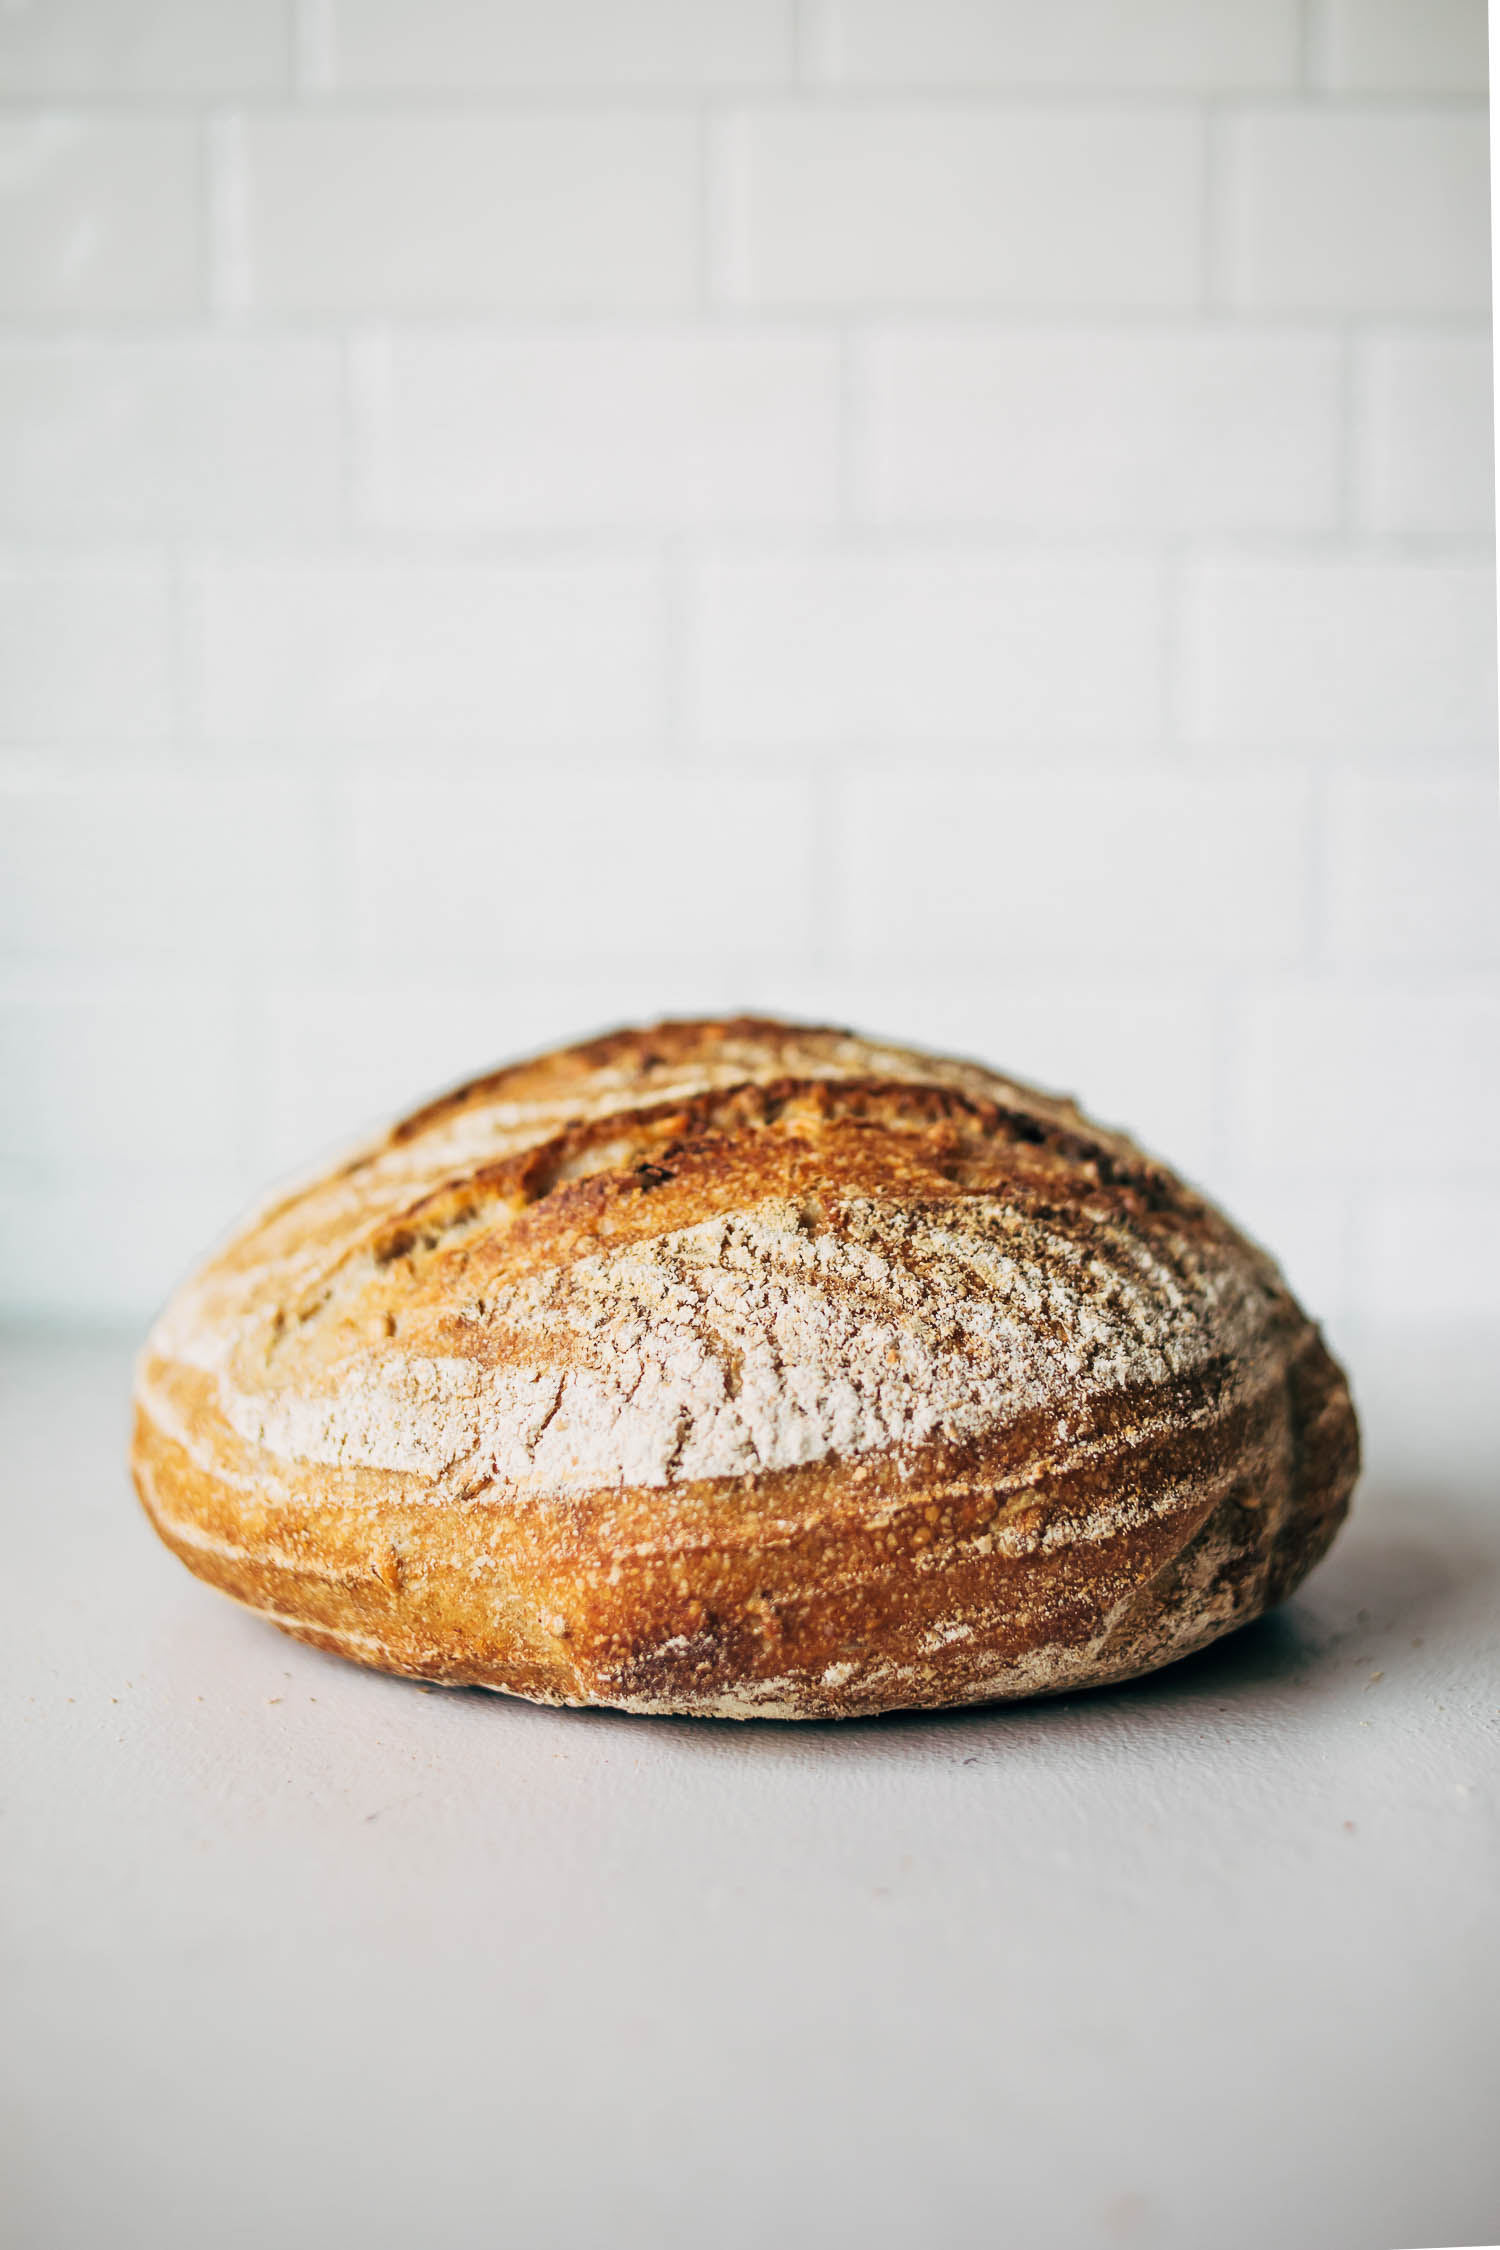 Loaf of sourdough bread on white background.